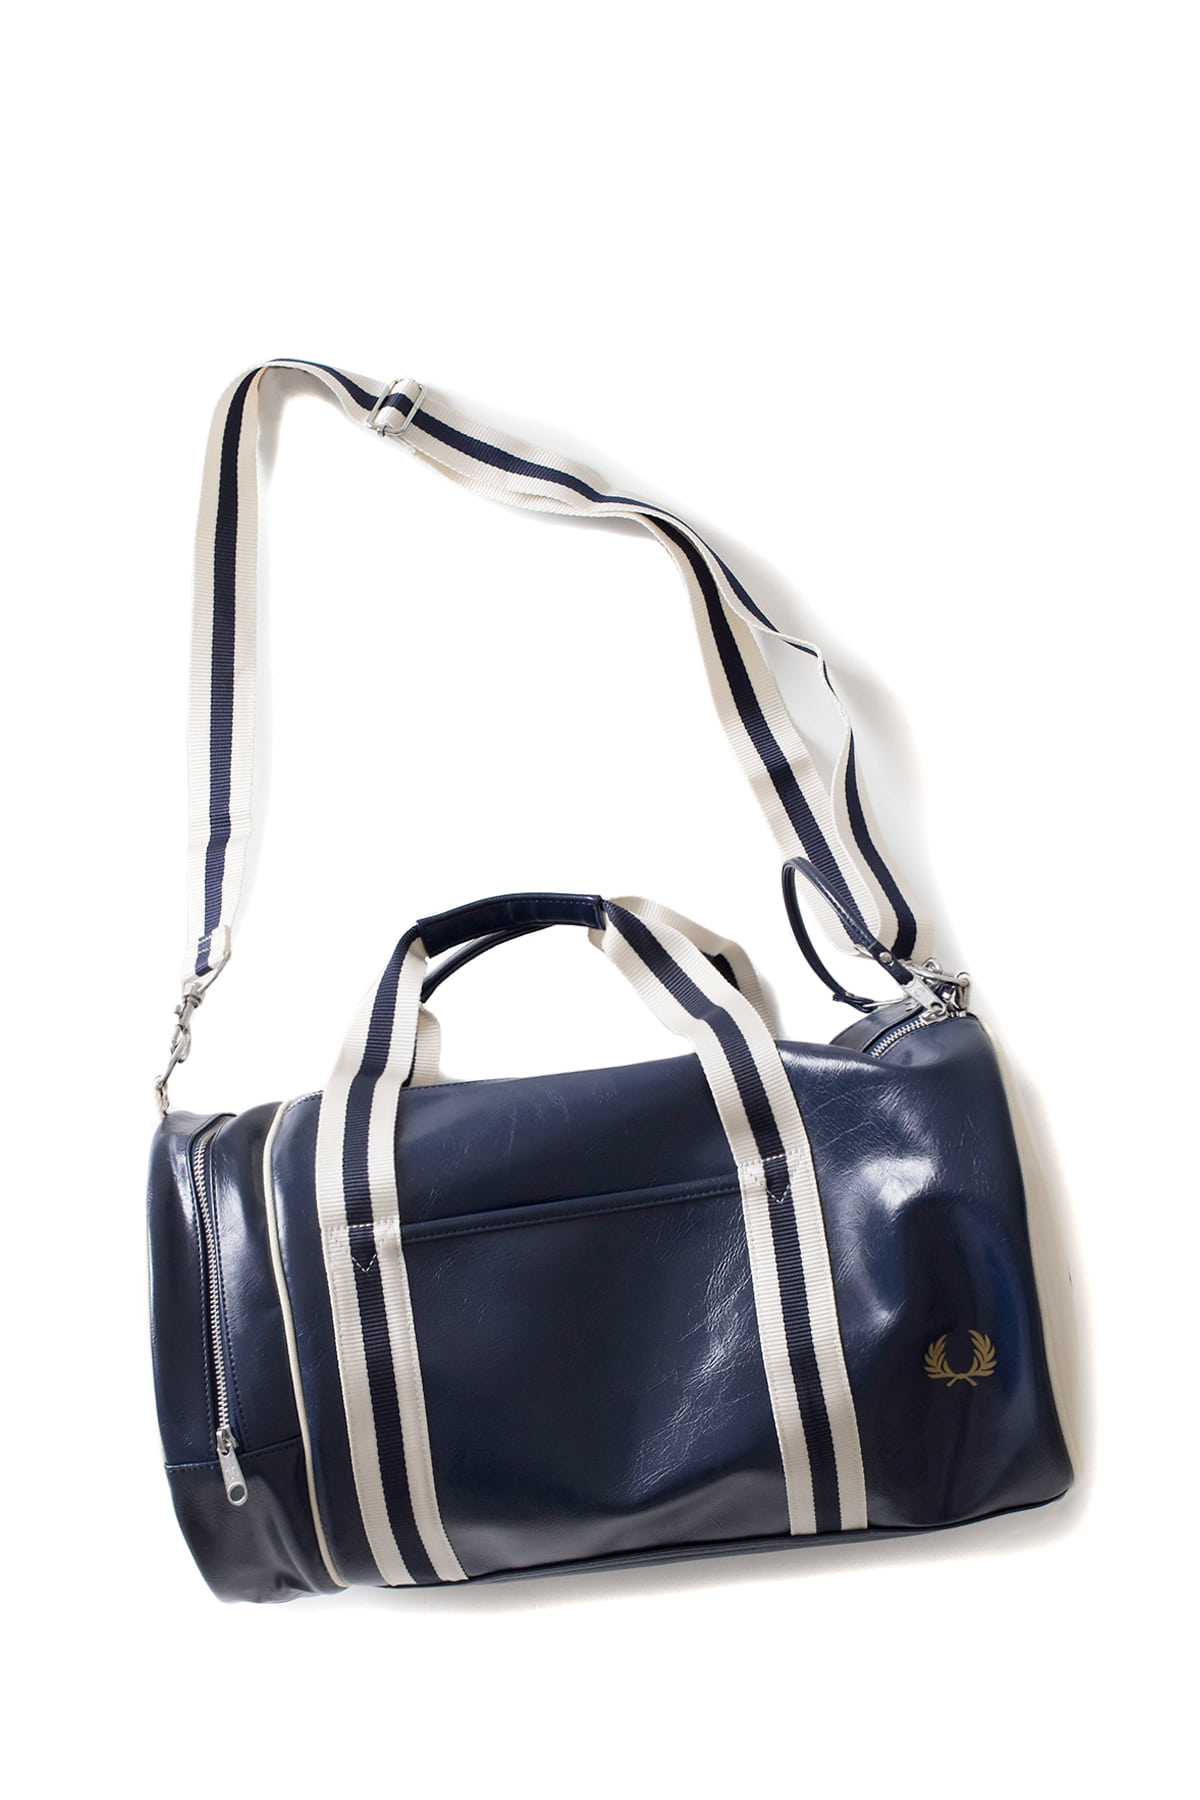 FRED PERRY : Classic Barrel Bag (Navy / Ecru)